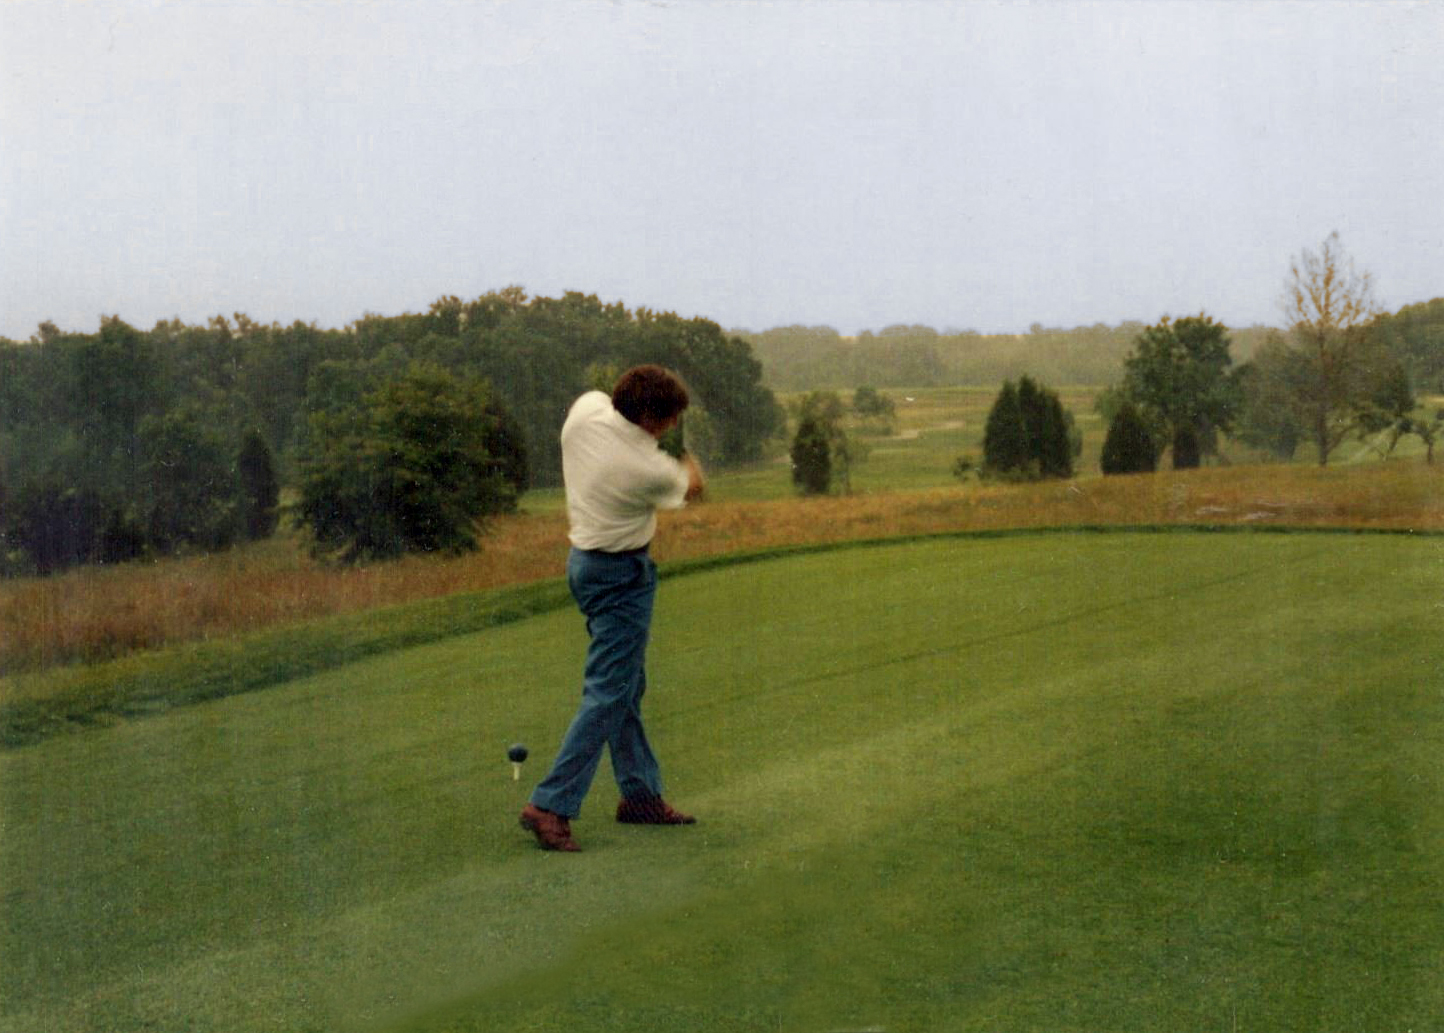 Elmore Just hits the first tee shot on opening day, 1989.